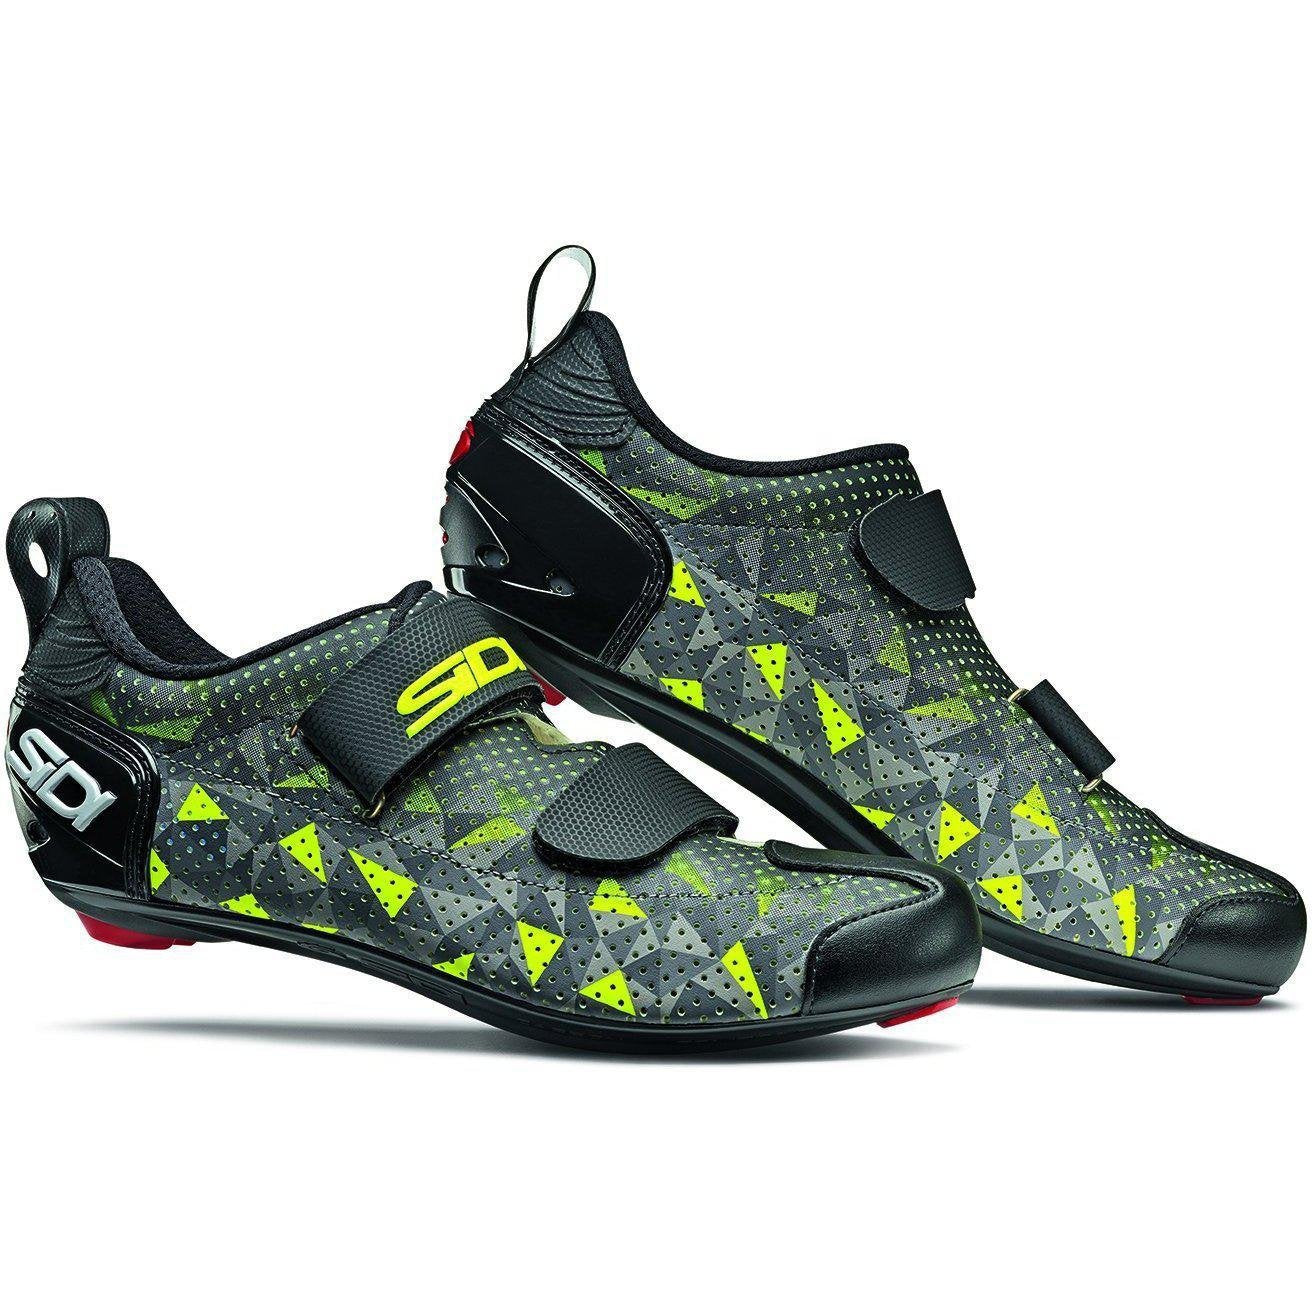 Sidi T-5 Air Triathlon Shoes